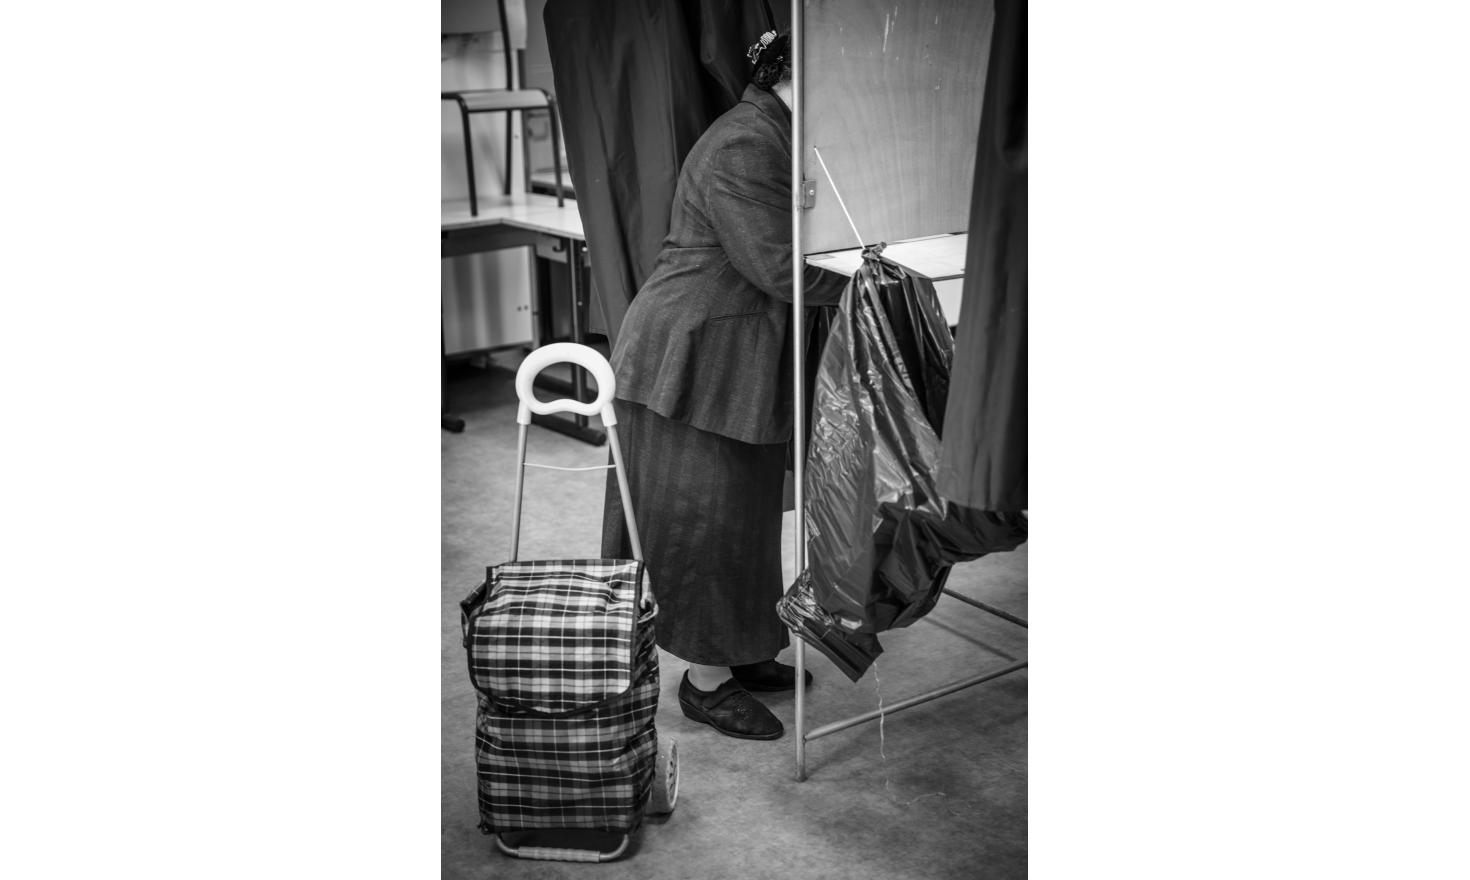 In the n°142 polling station, Belzunce, during the second turn of the French presidential election day in Marseille, May 7th 2017.